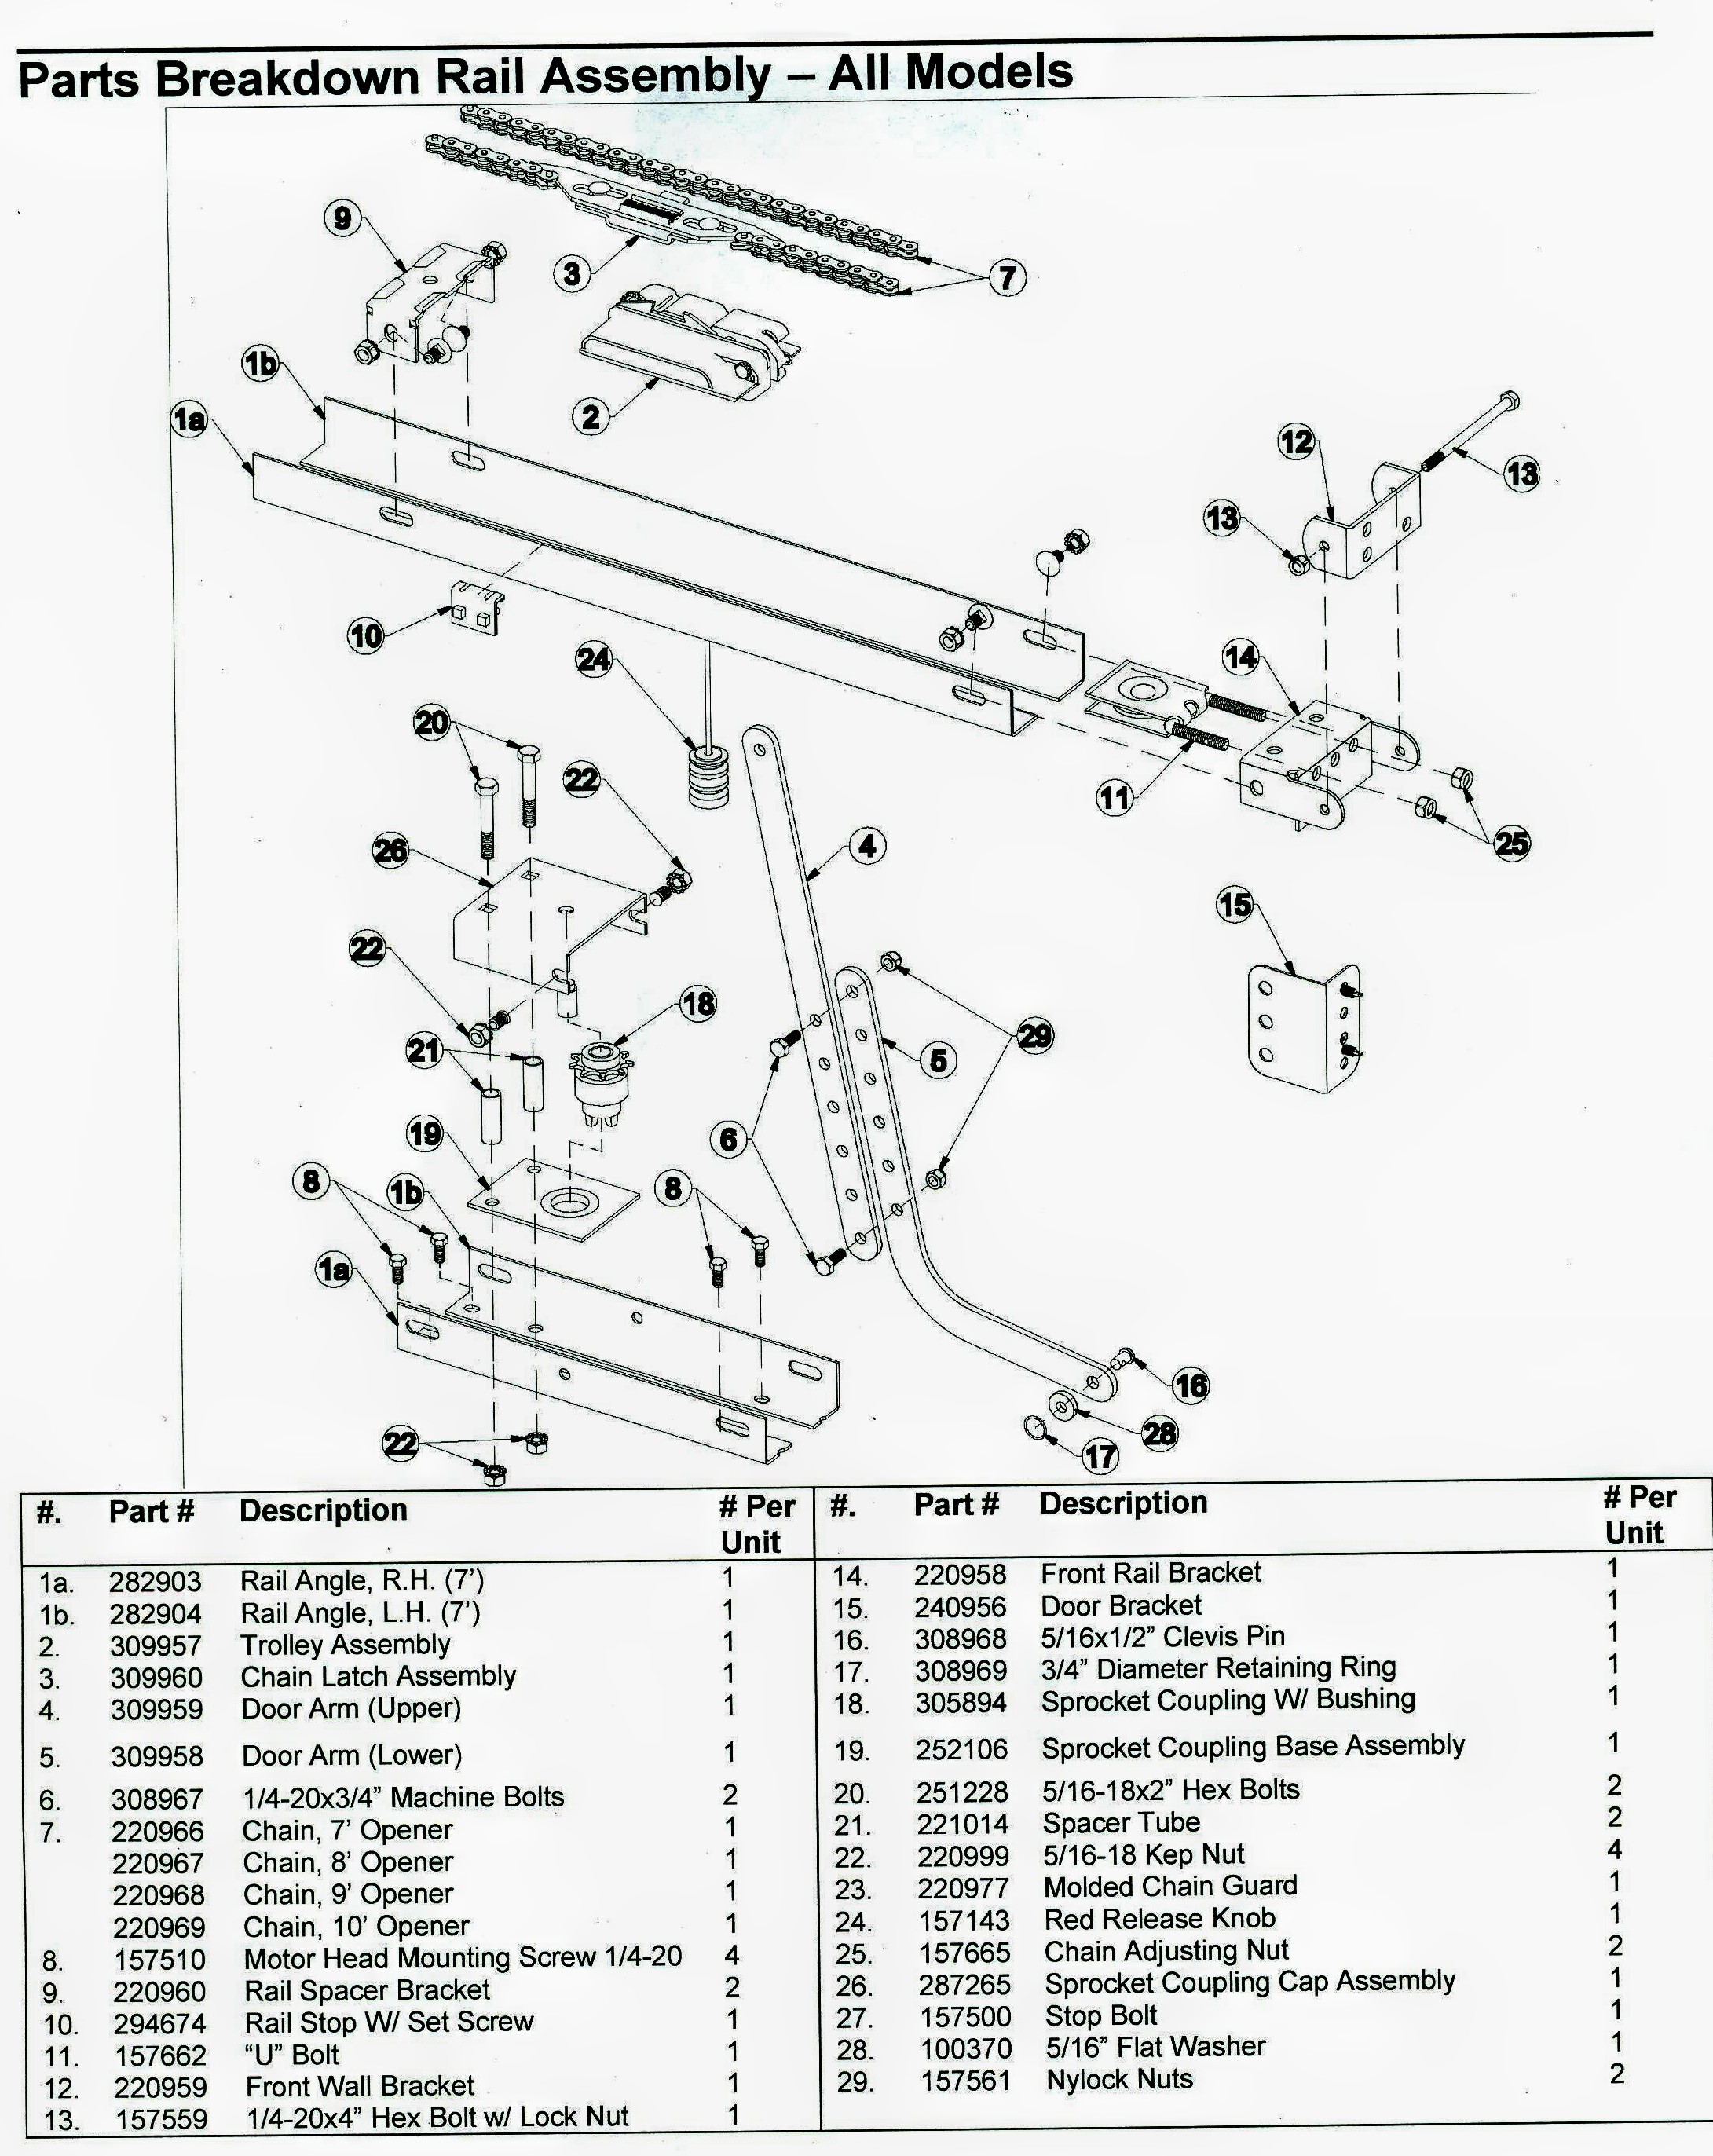 Steering Suspension Diagrams further New Radiator further Symbols Chart also Wayne Dalton Quantum Rail Parts Breakdown also 134665 Flasher Turn Signal Problem. on quick car wiring diagram